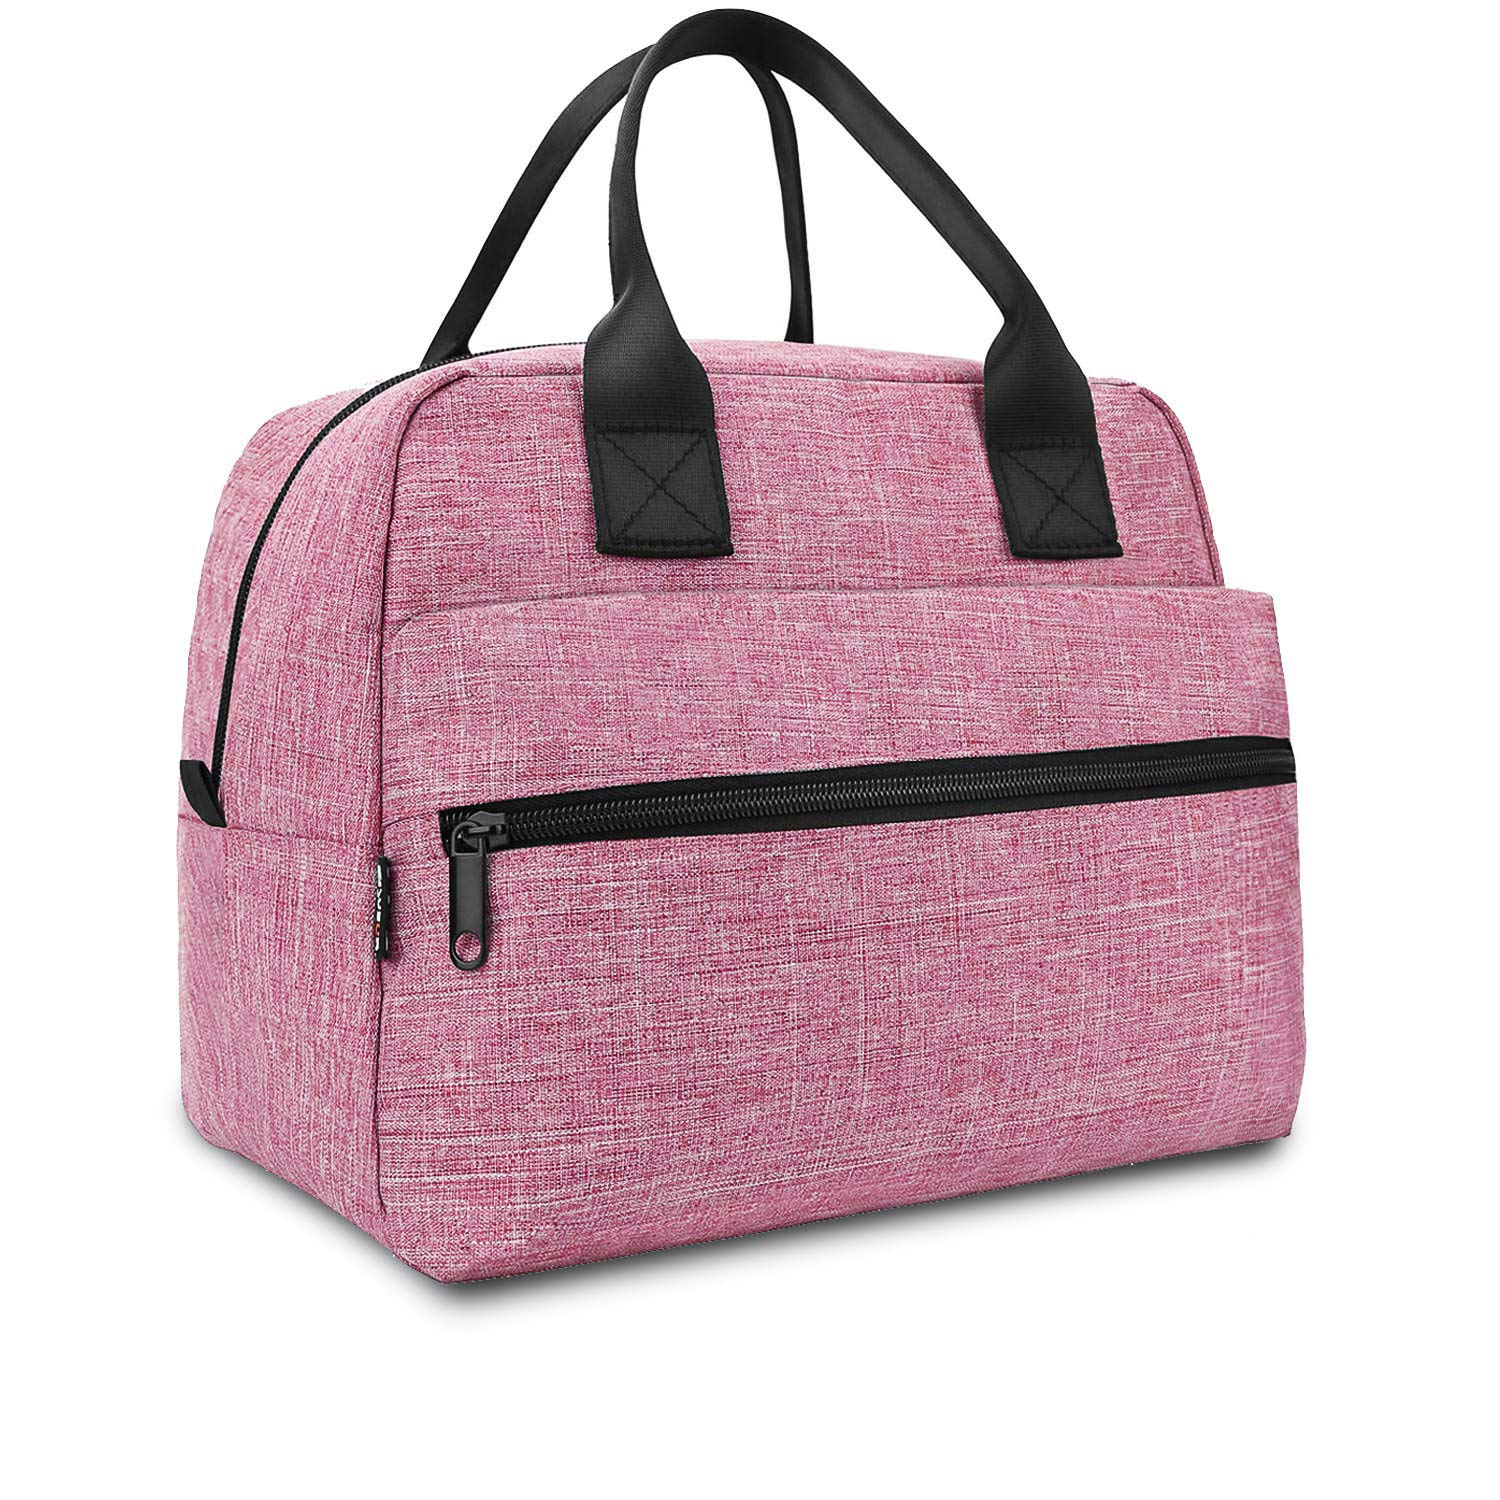 Lunch Bag for Men & Women Insulated Lunch Bags Large Box for Work Adult Reusable Lunch boxes Cooler Tote (Pink)